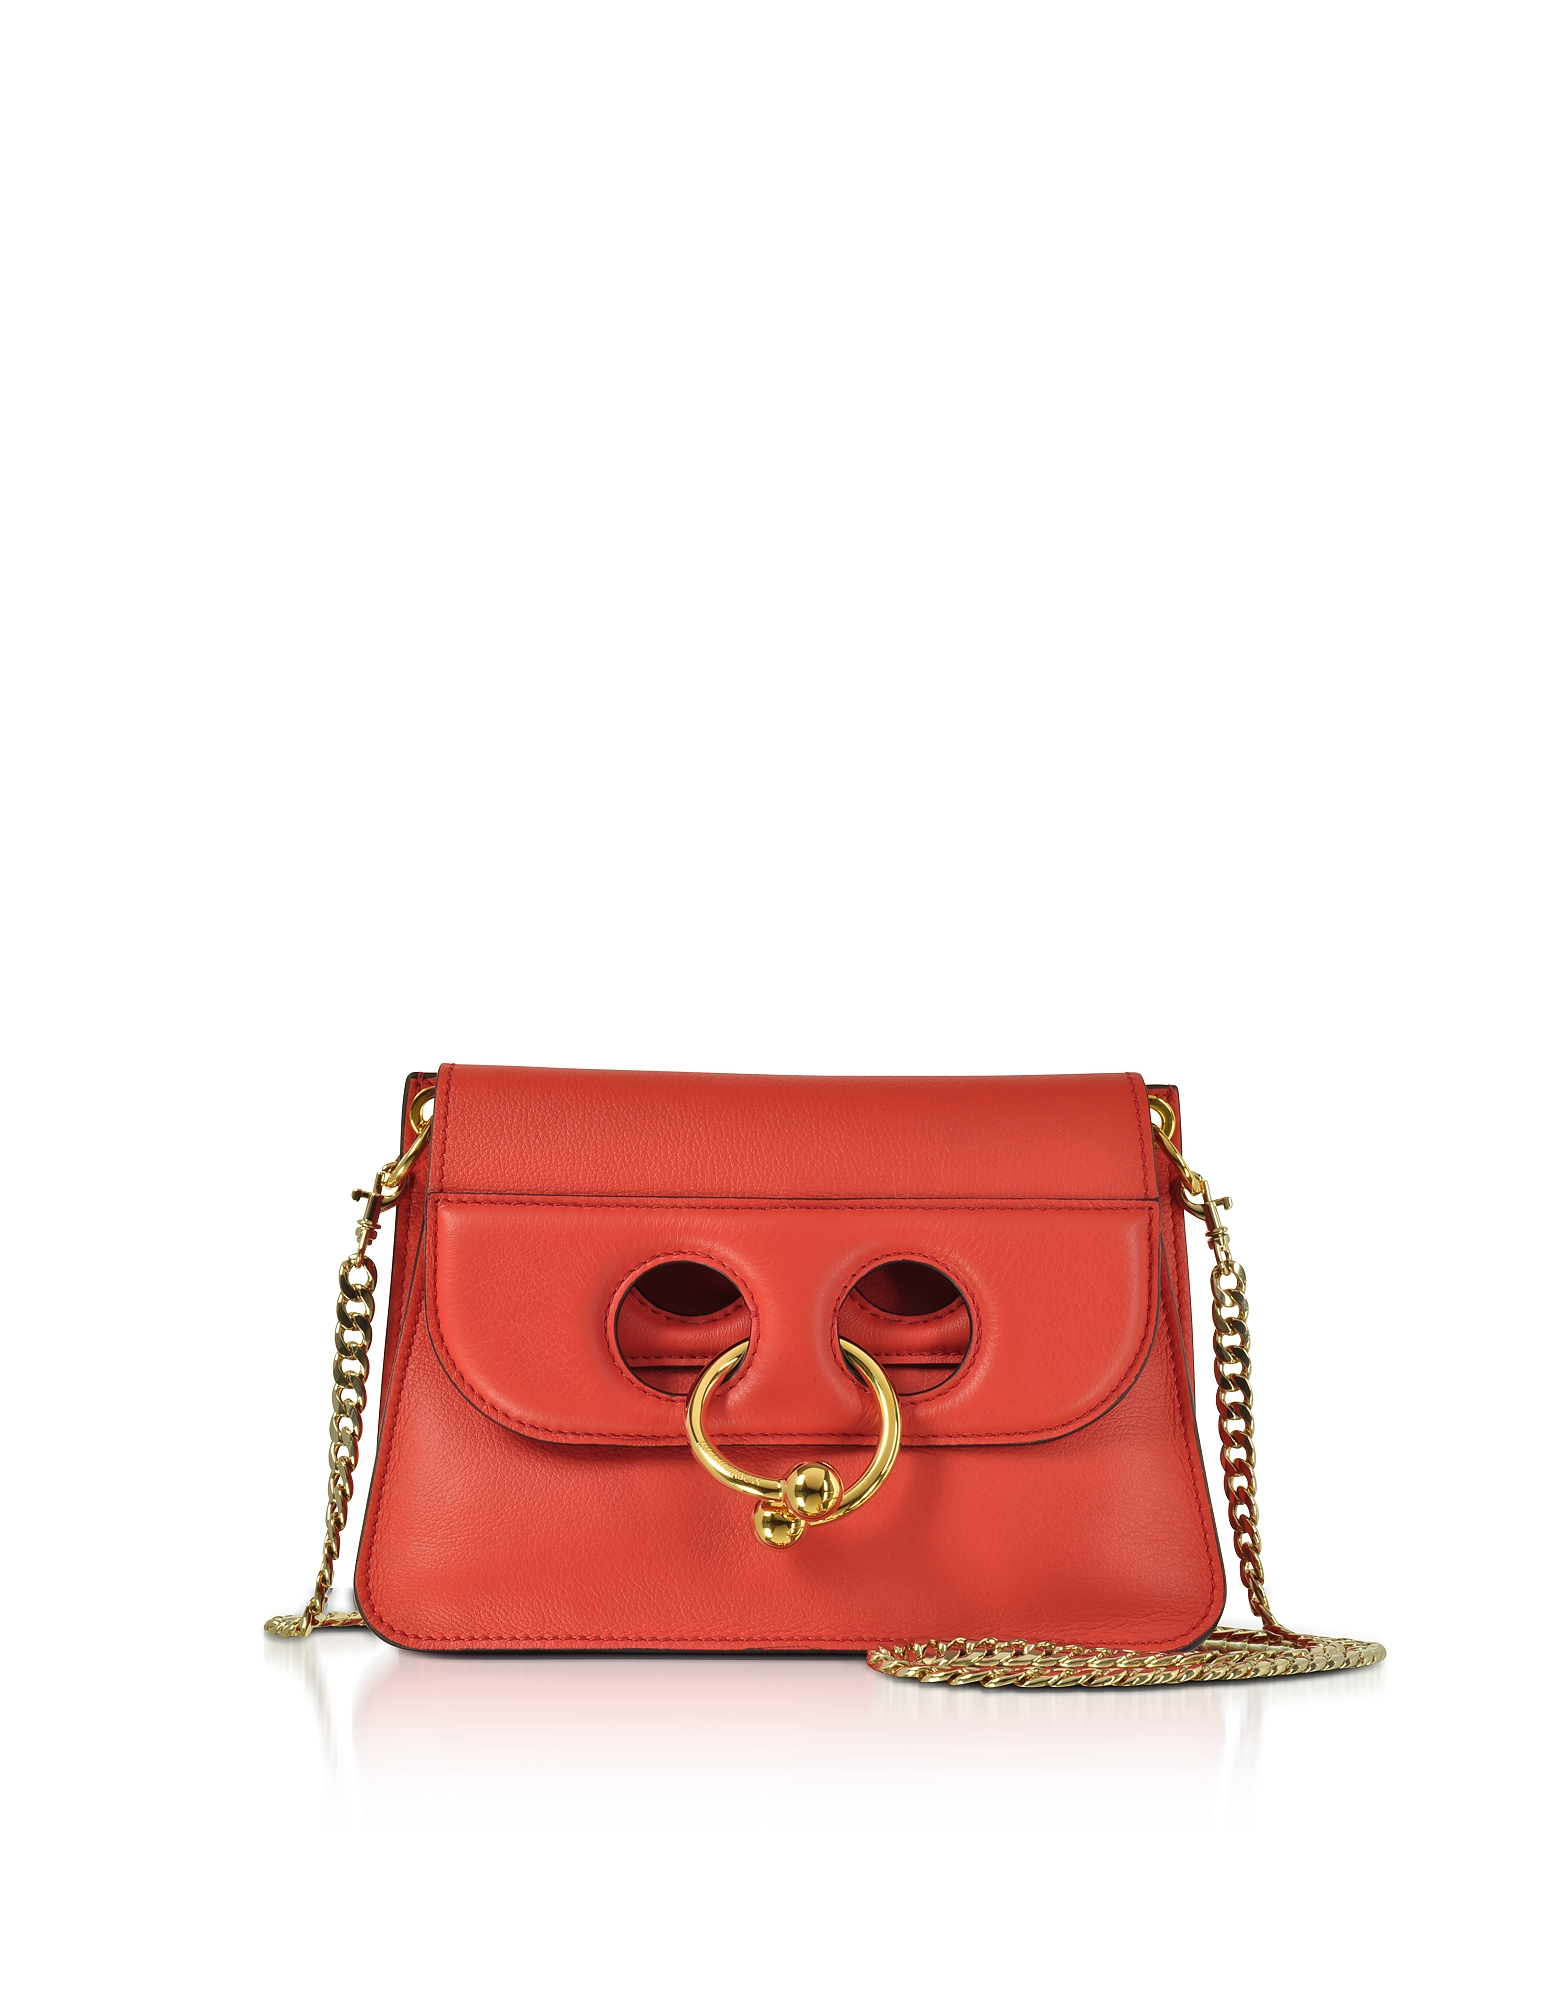 JW Anderson Handbags, Scarlet Red Mini Pierce Bag